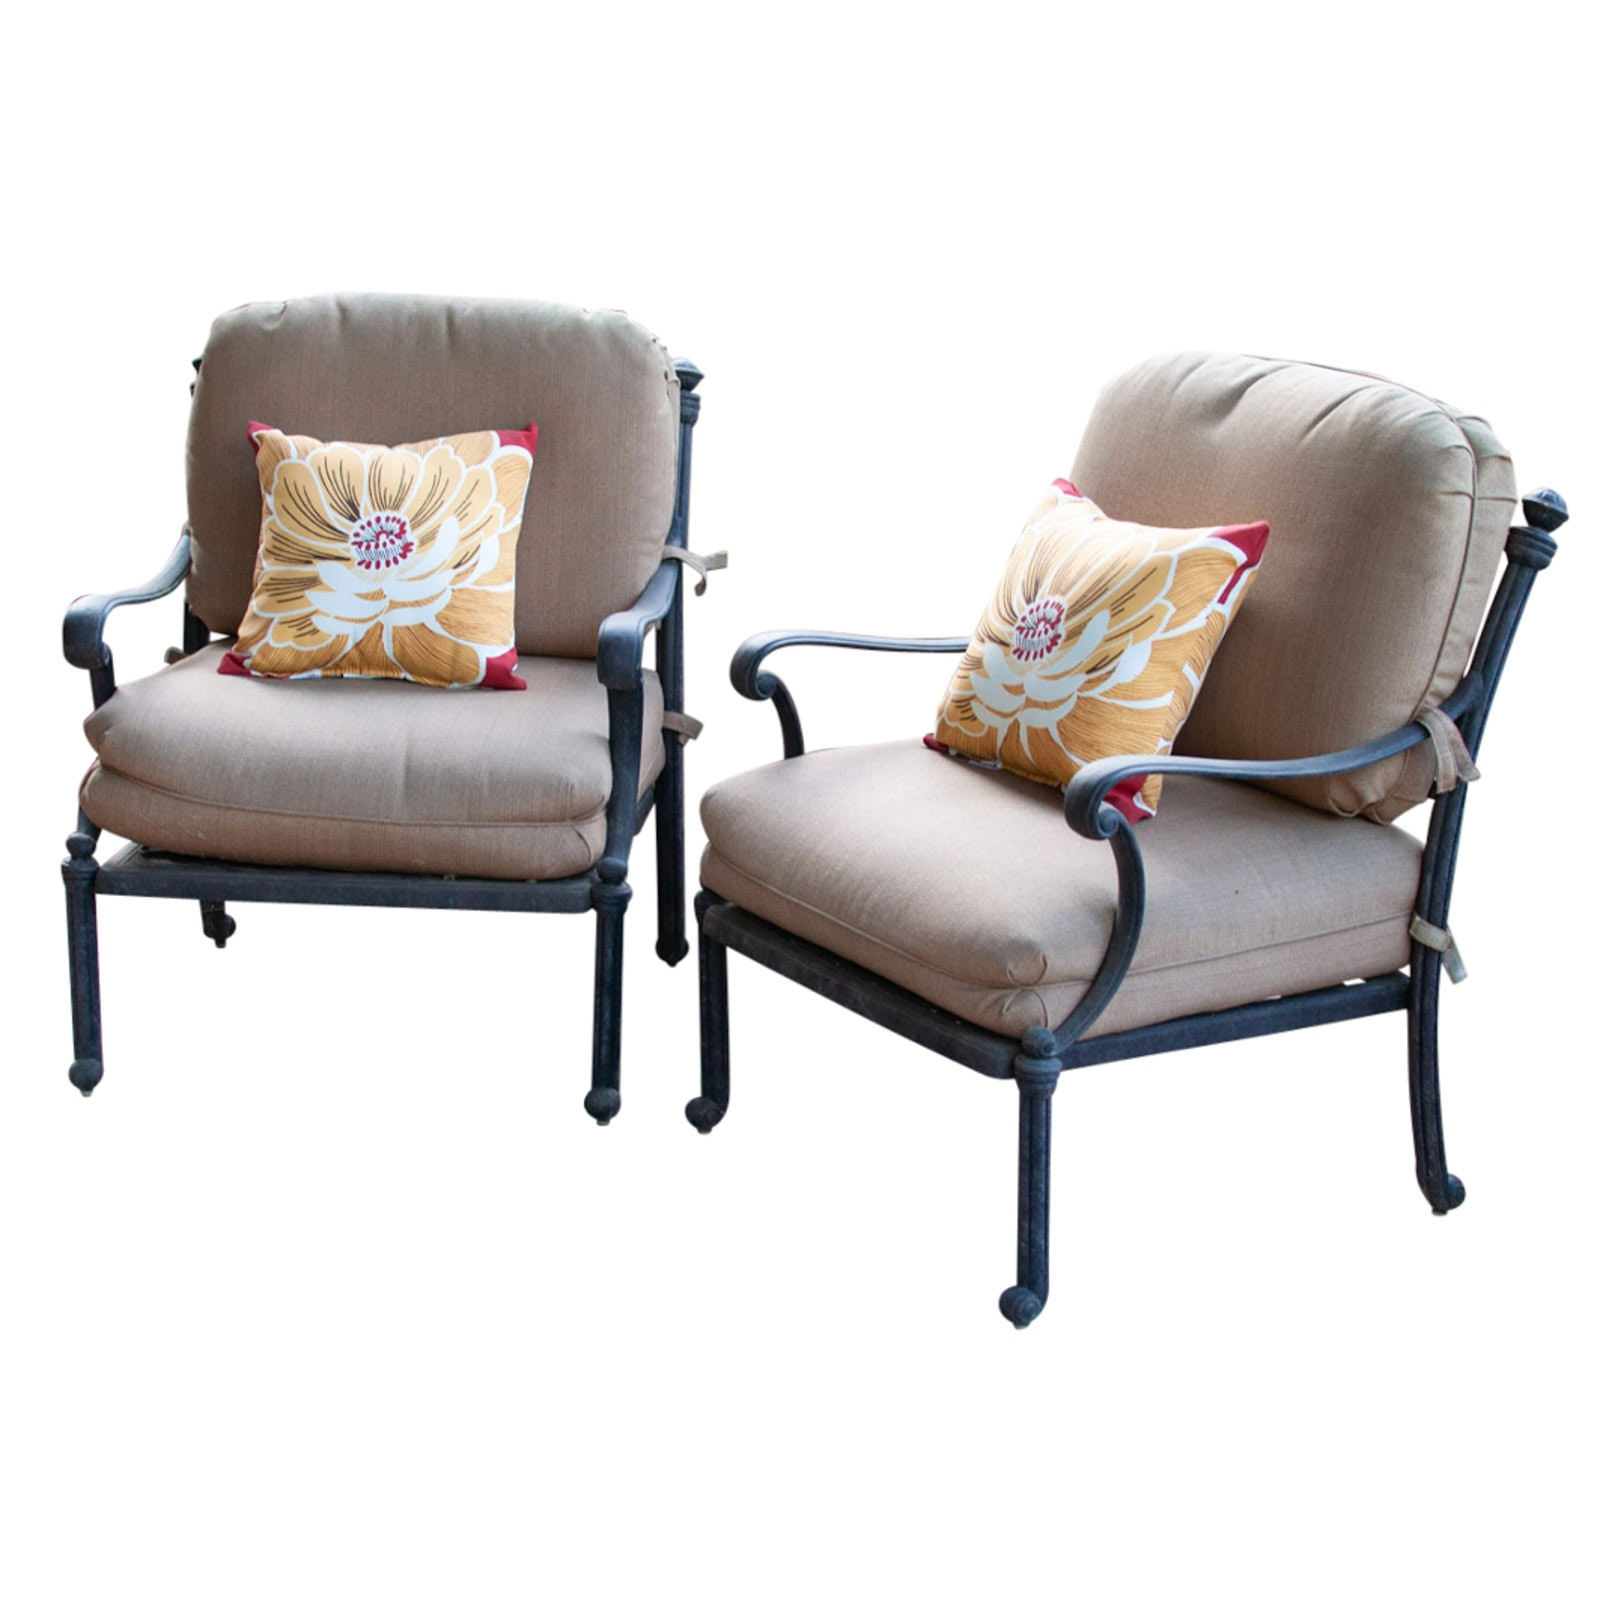 Pair of Outdoor Armchairs with Cushions and Accent Pillows